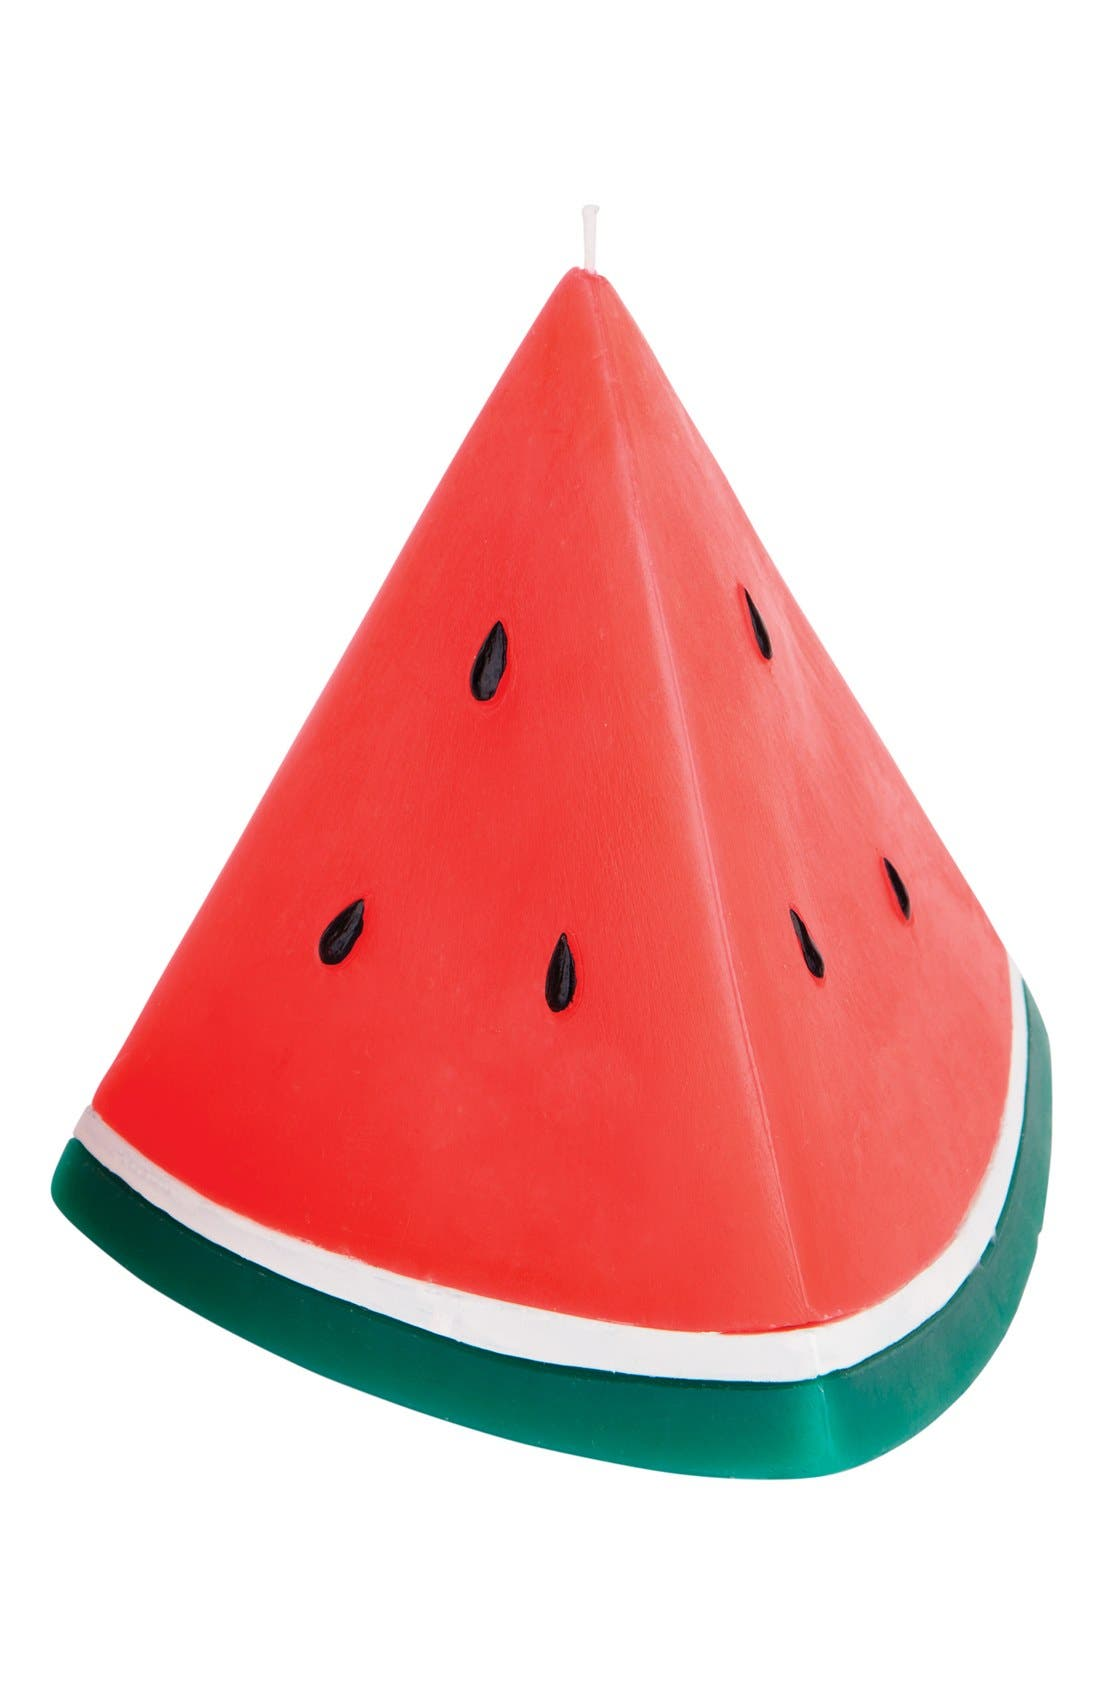 Alternate Image 1 Selected - Sunnylife Watermelon Candle